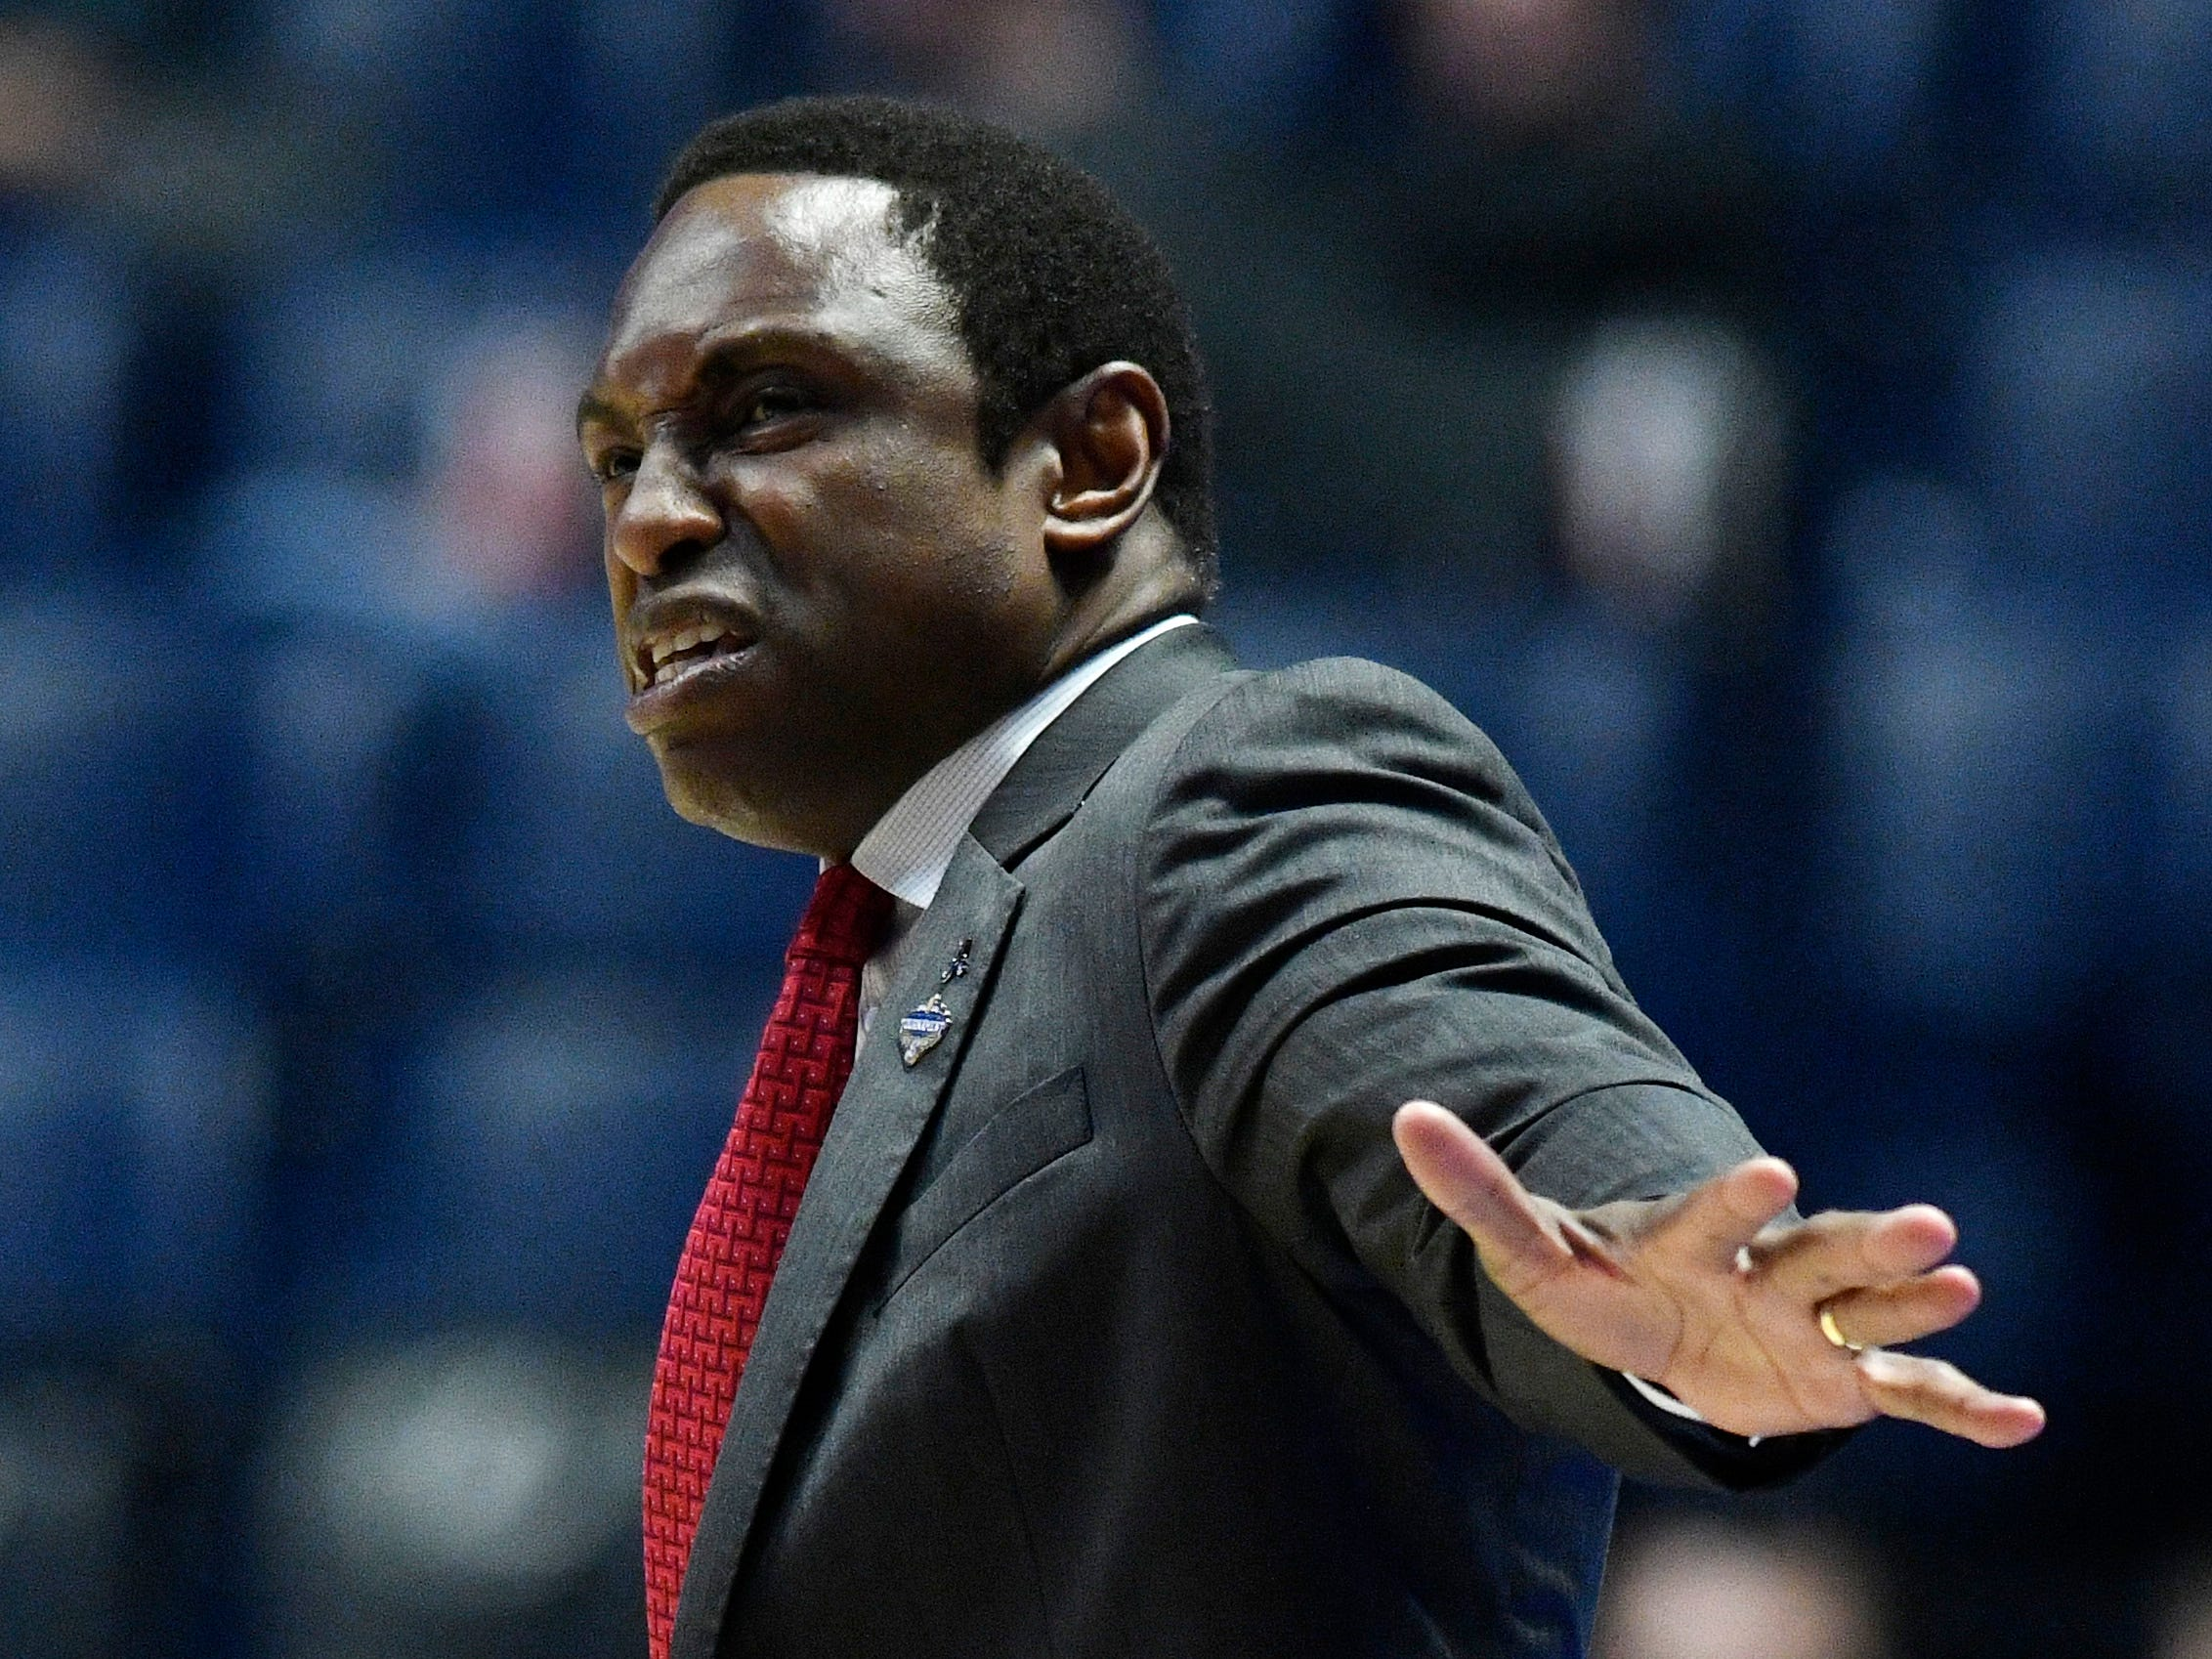 Alabama head coach Avery Johnson instructs his team during the first half of the SEC Men's Basketball Tournament game at Bridgestone Arena in Nashville, Tenn., Thursday, March 14, 2019.